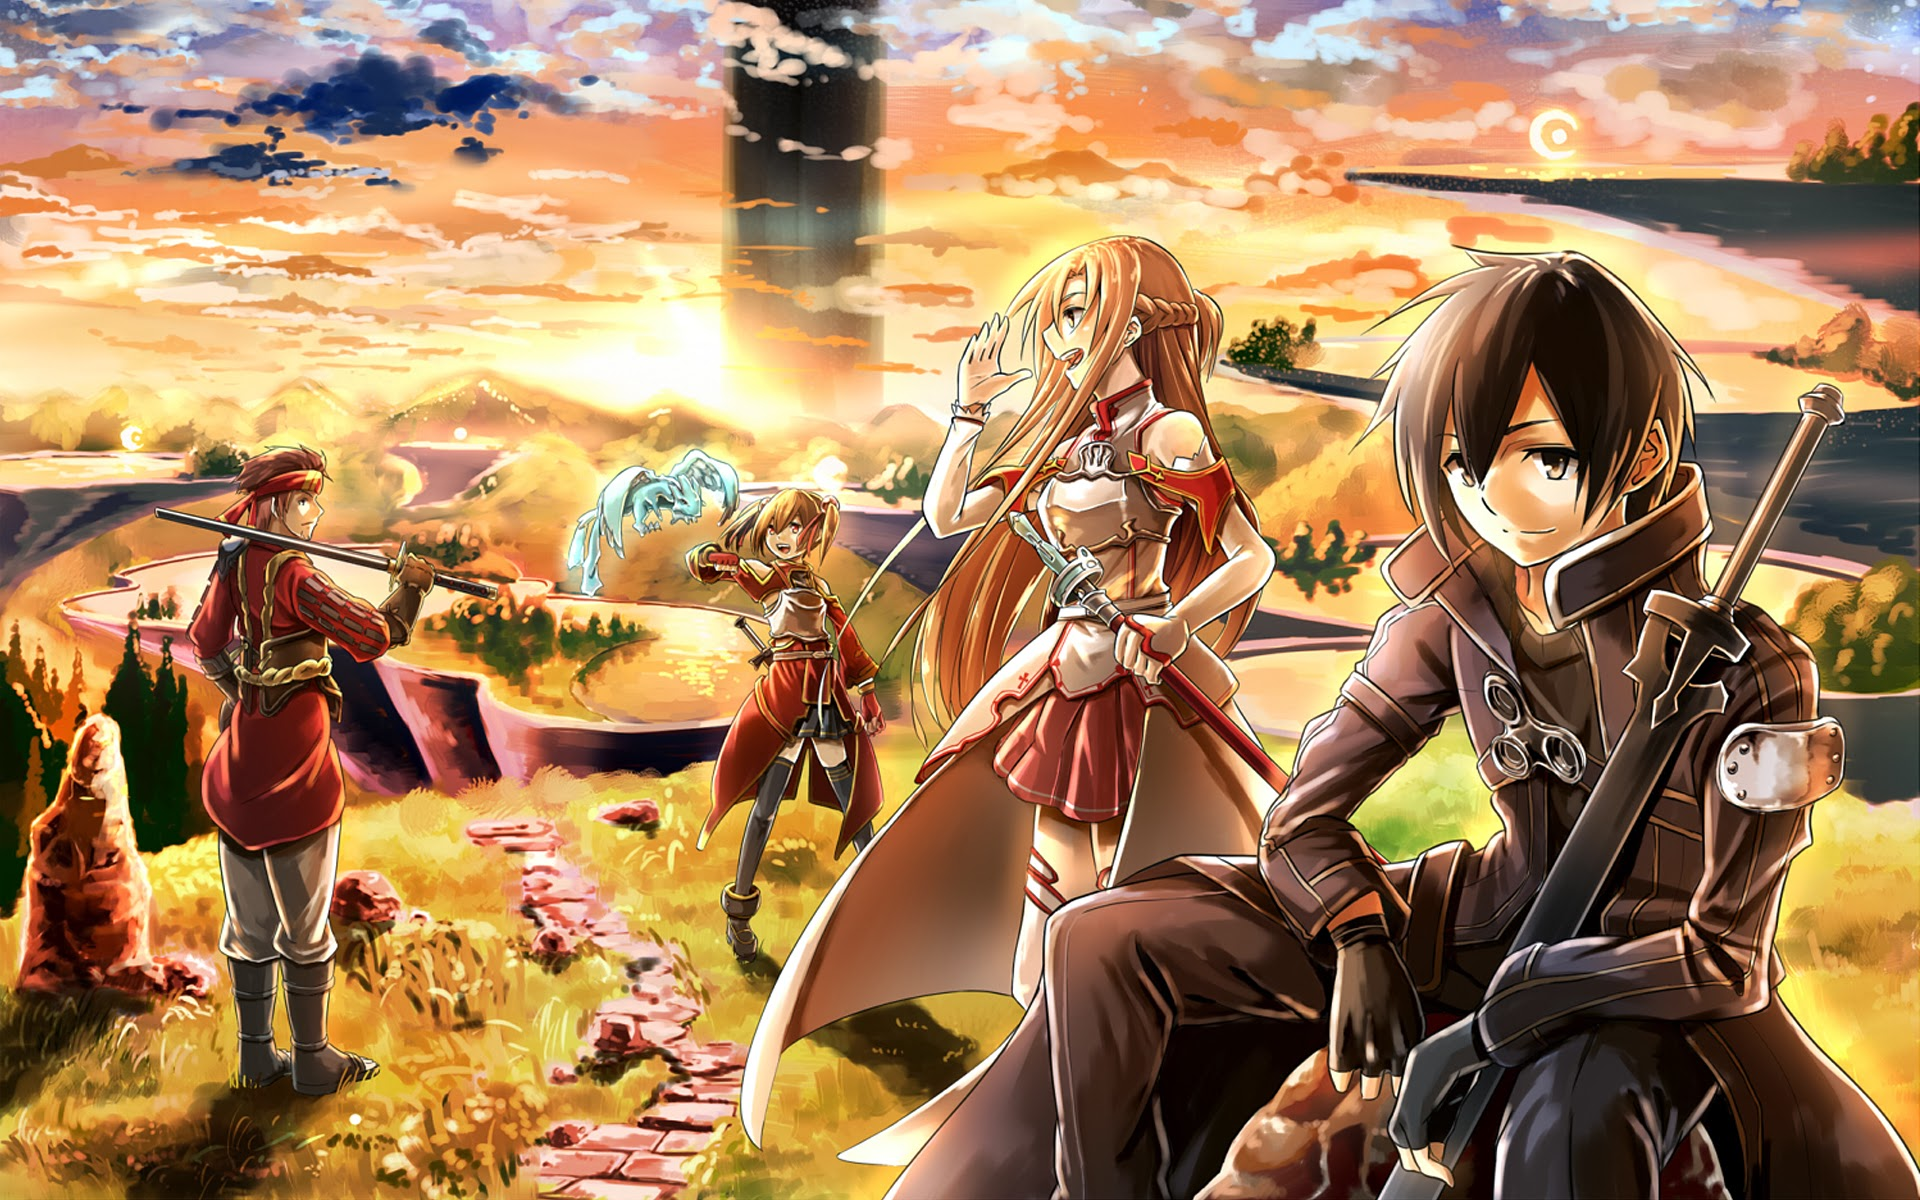 Free Download Sword Art Online Anime Sunset Hd Wallpaper Image